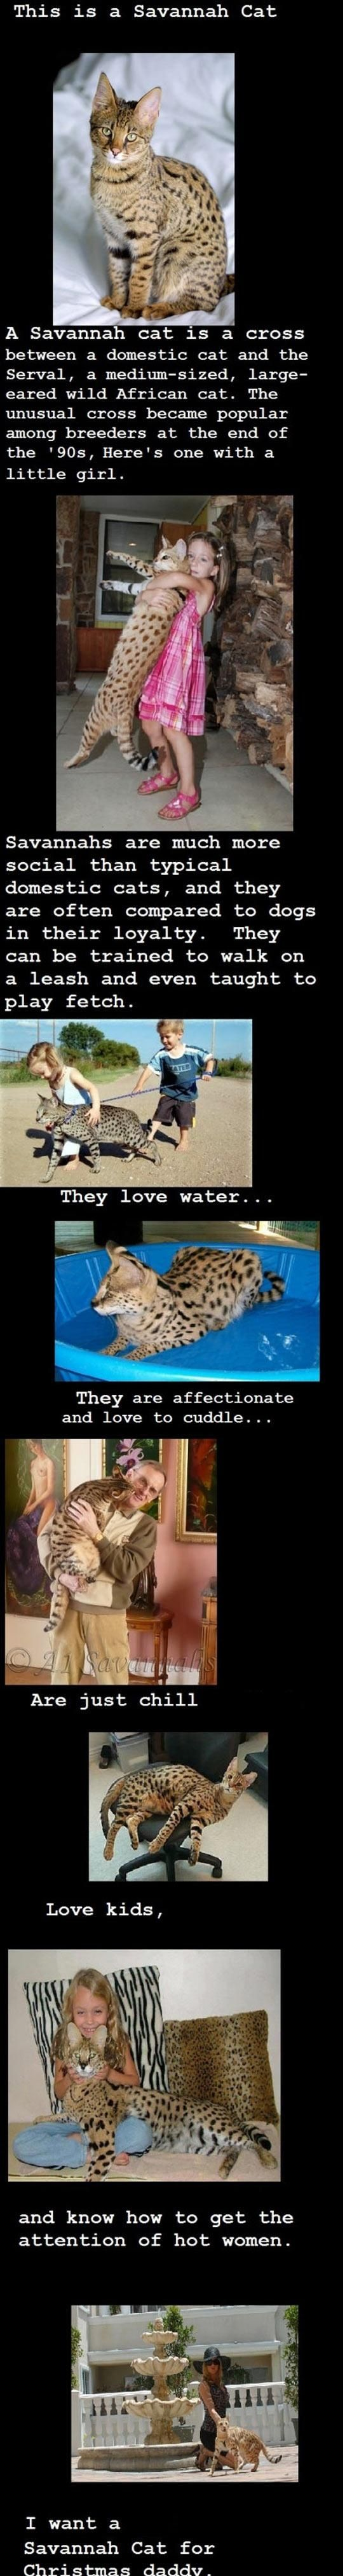 Now i want savannah cat